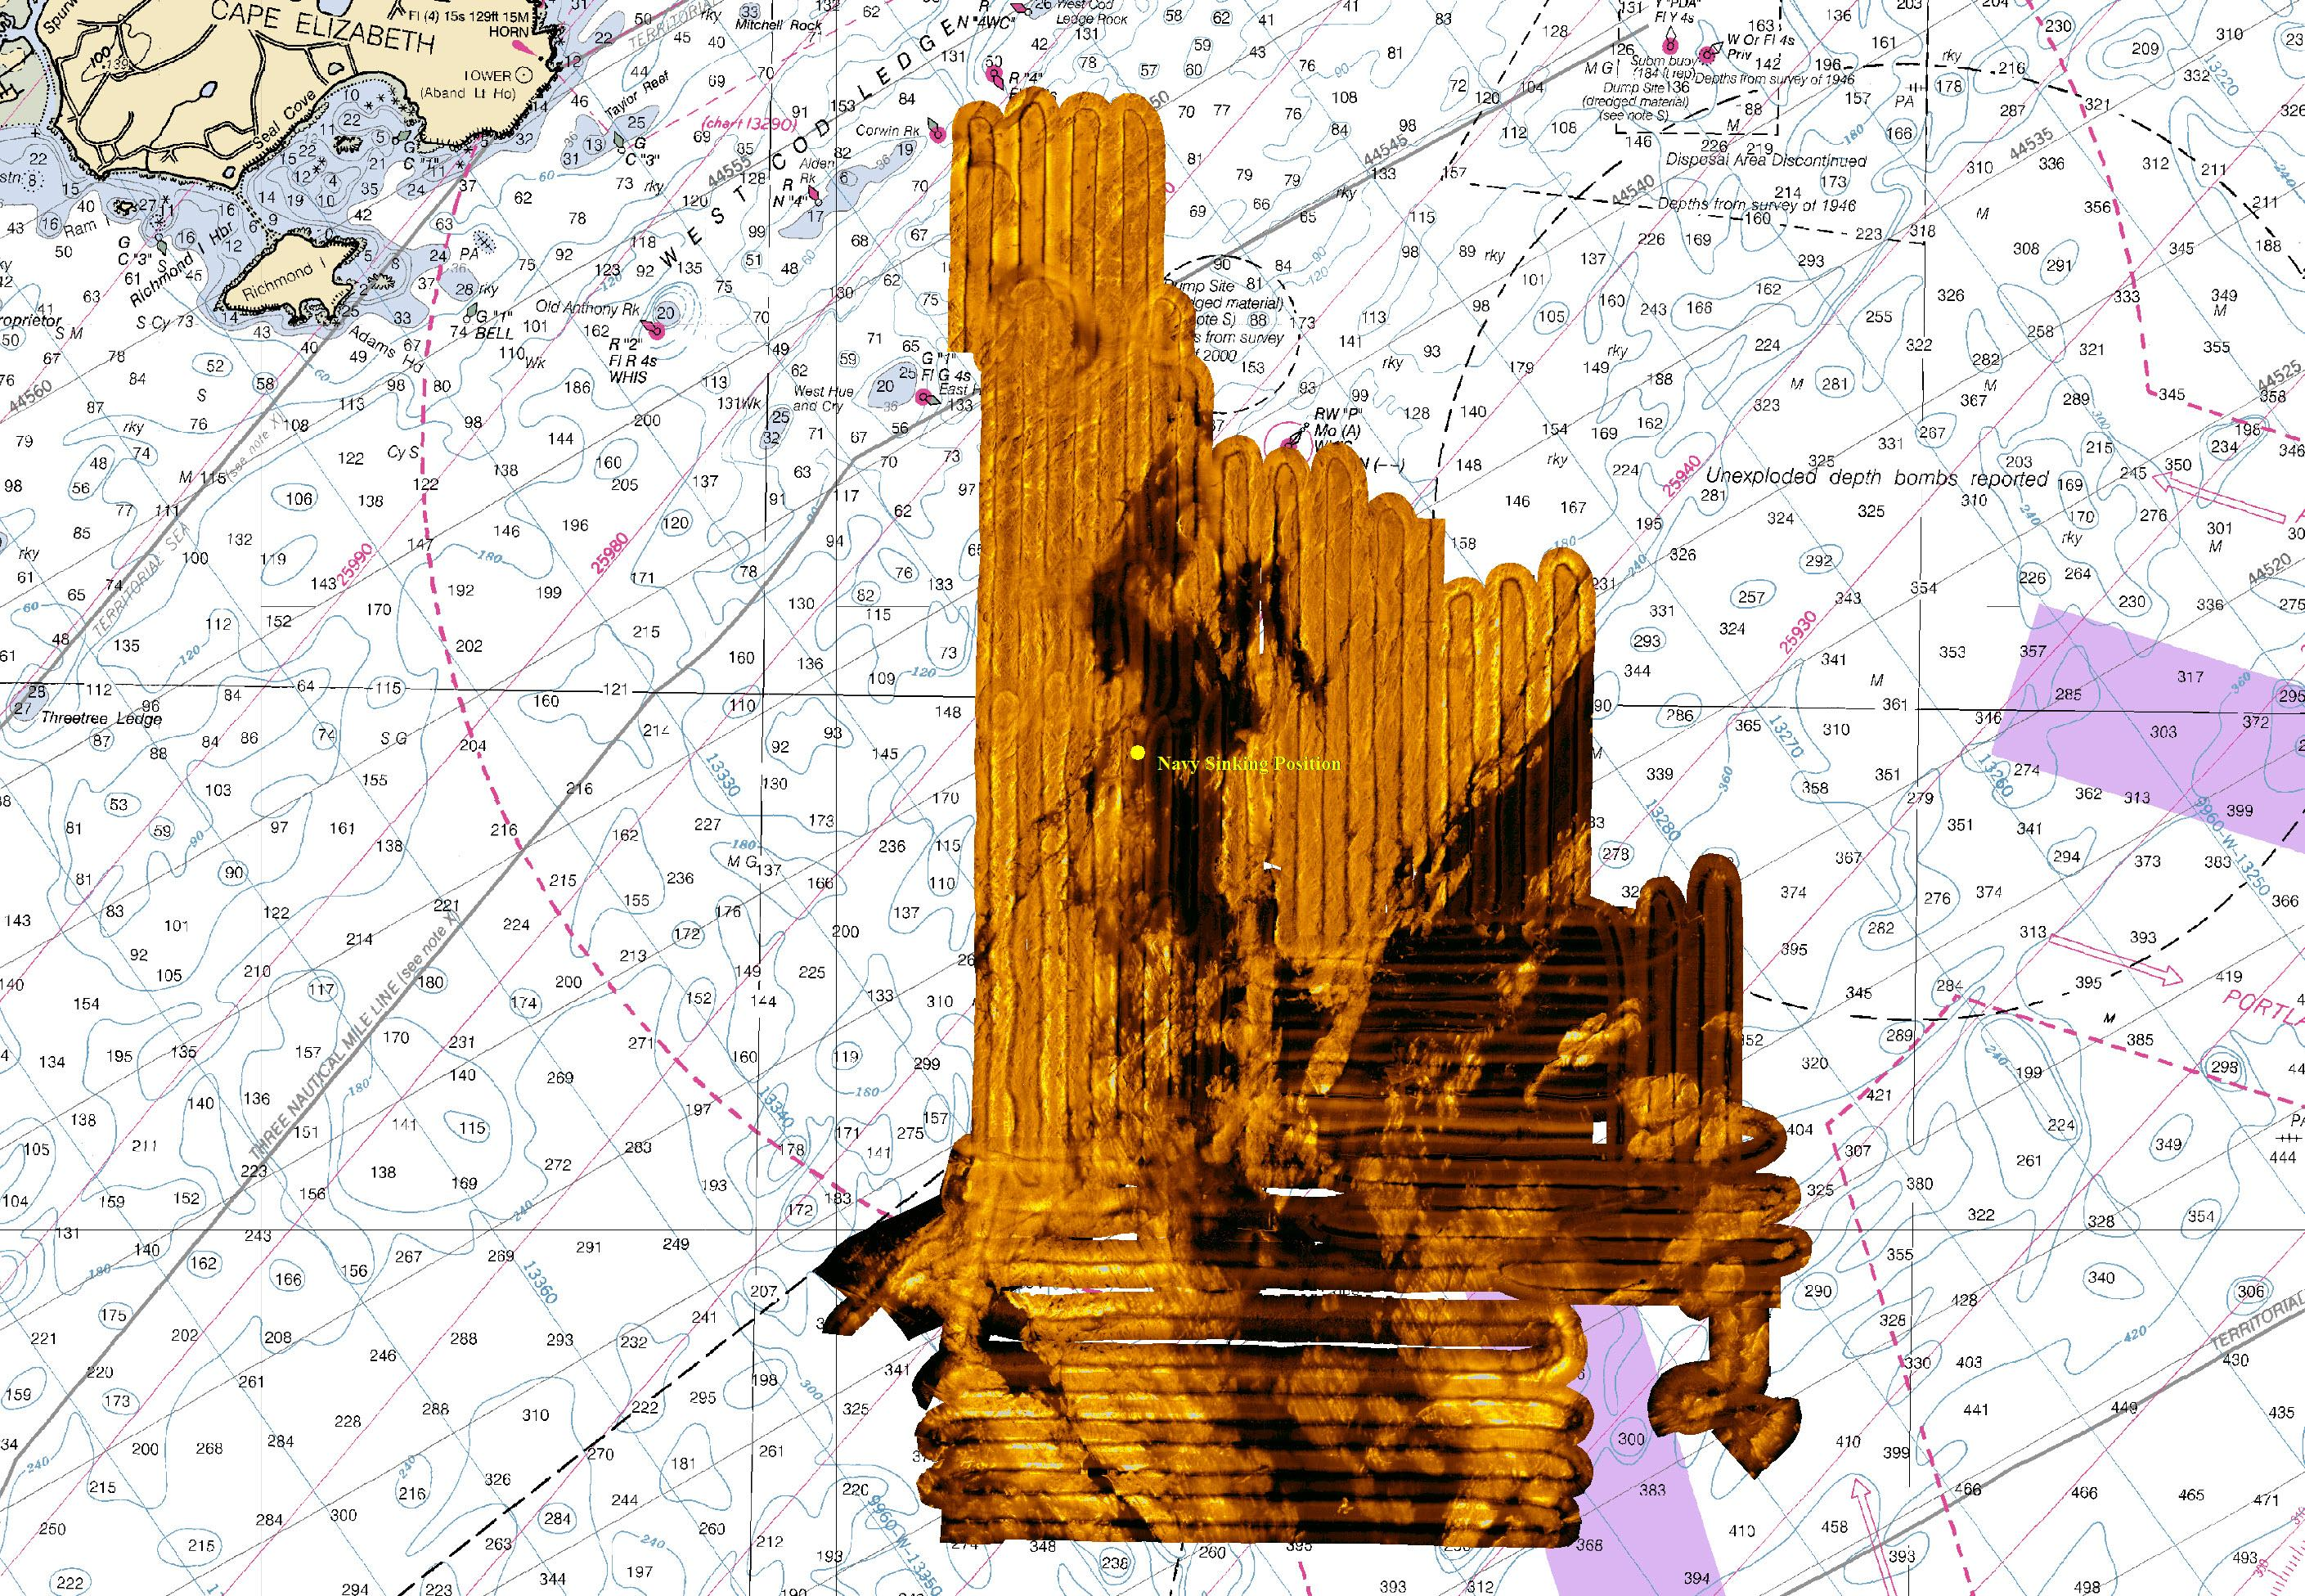 Embed 4 37 Sq. Miles Total Area searched with Side Scan Sonar Navy Officila Sinking Position